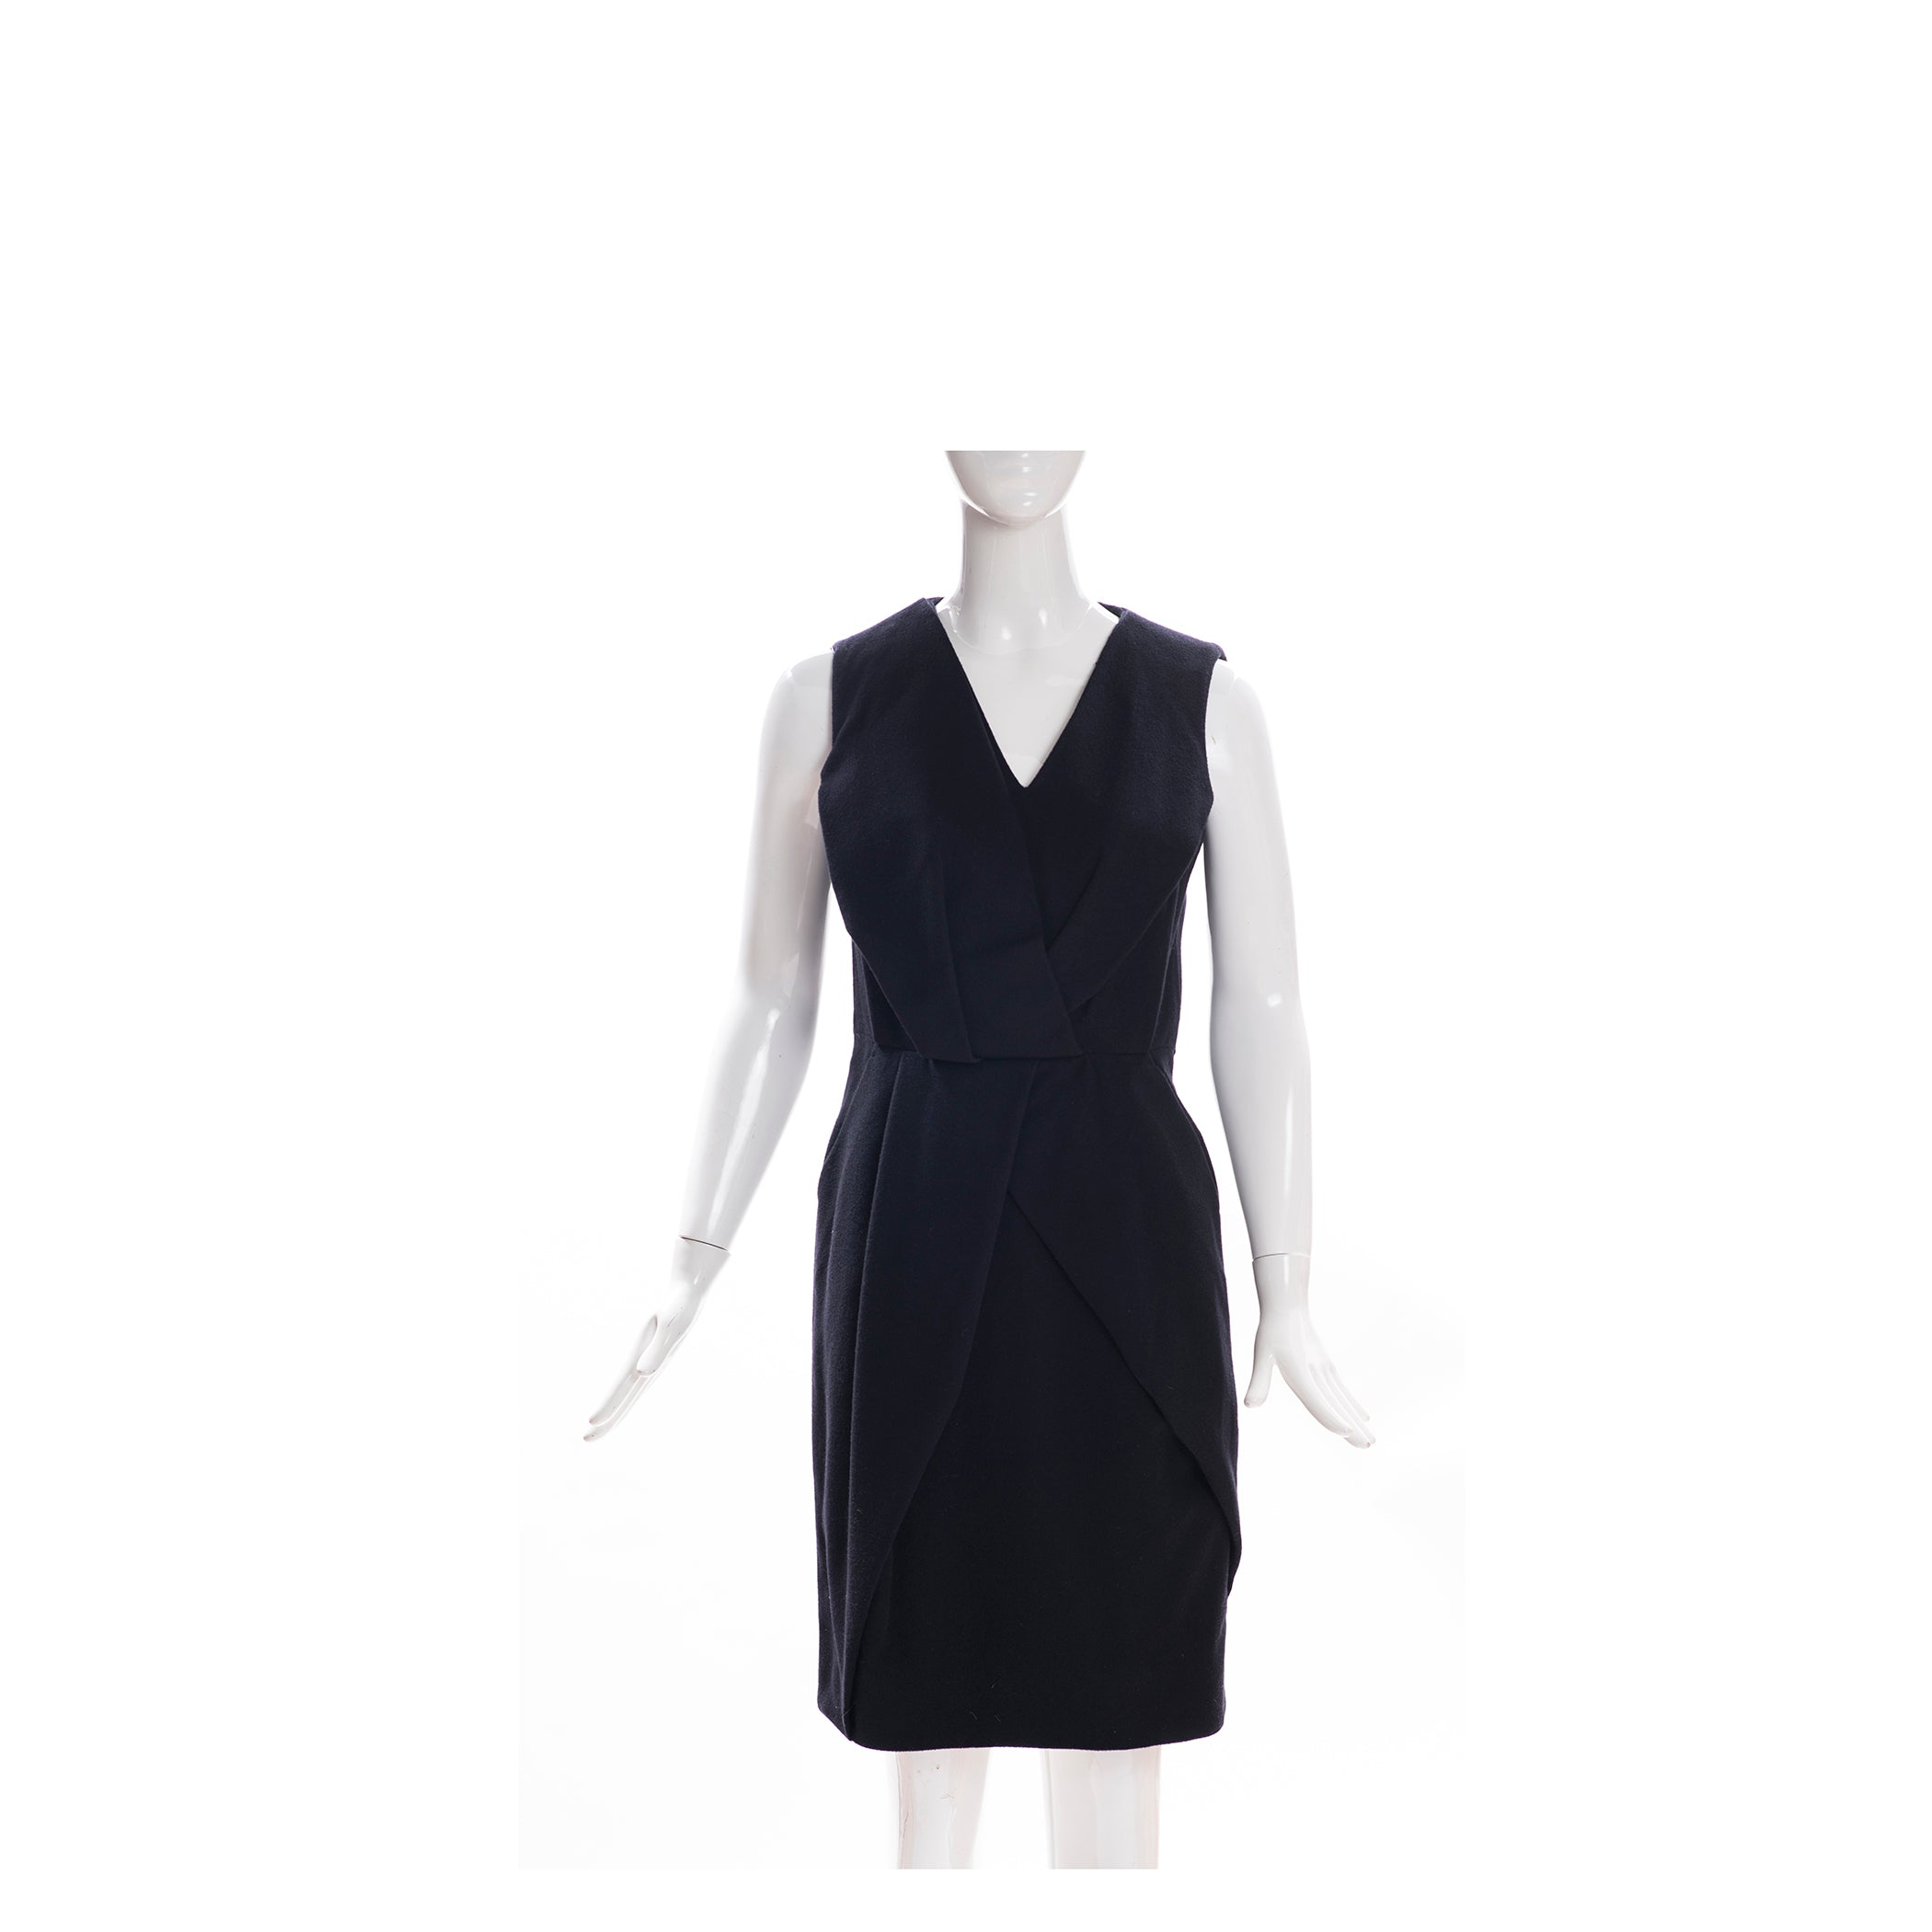 PAUW Amsterdam Black Wool Cashmere Sleeveless V Neck Sheath Dress Designer Sz 2